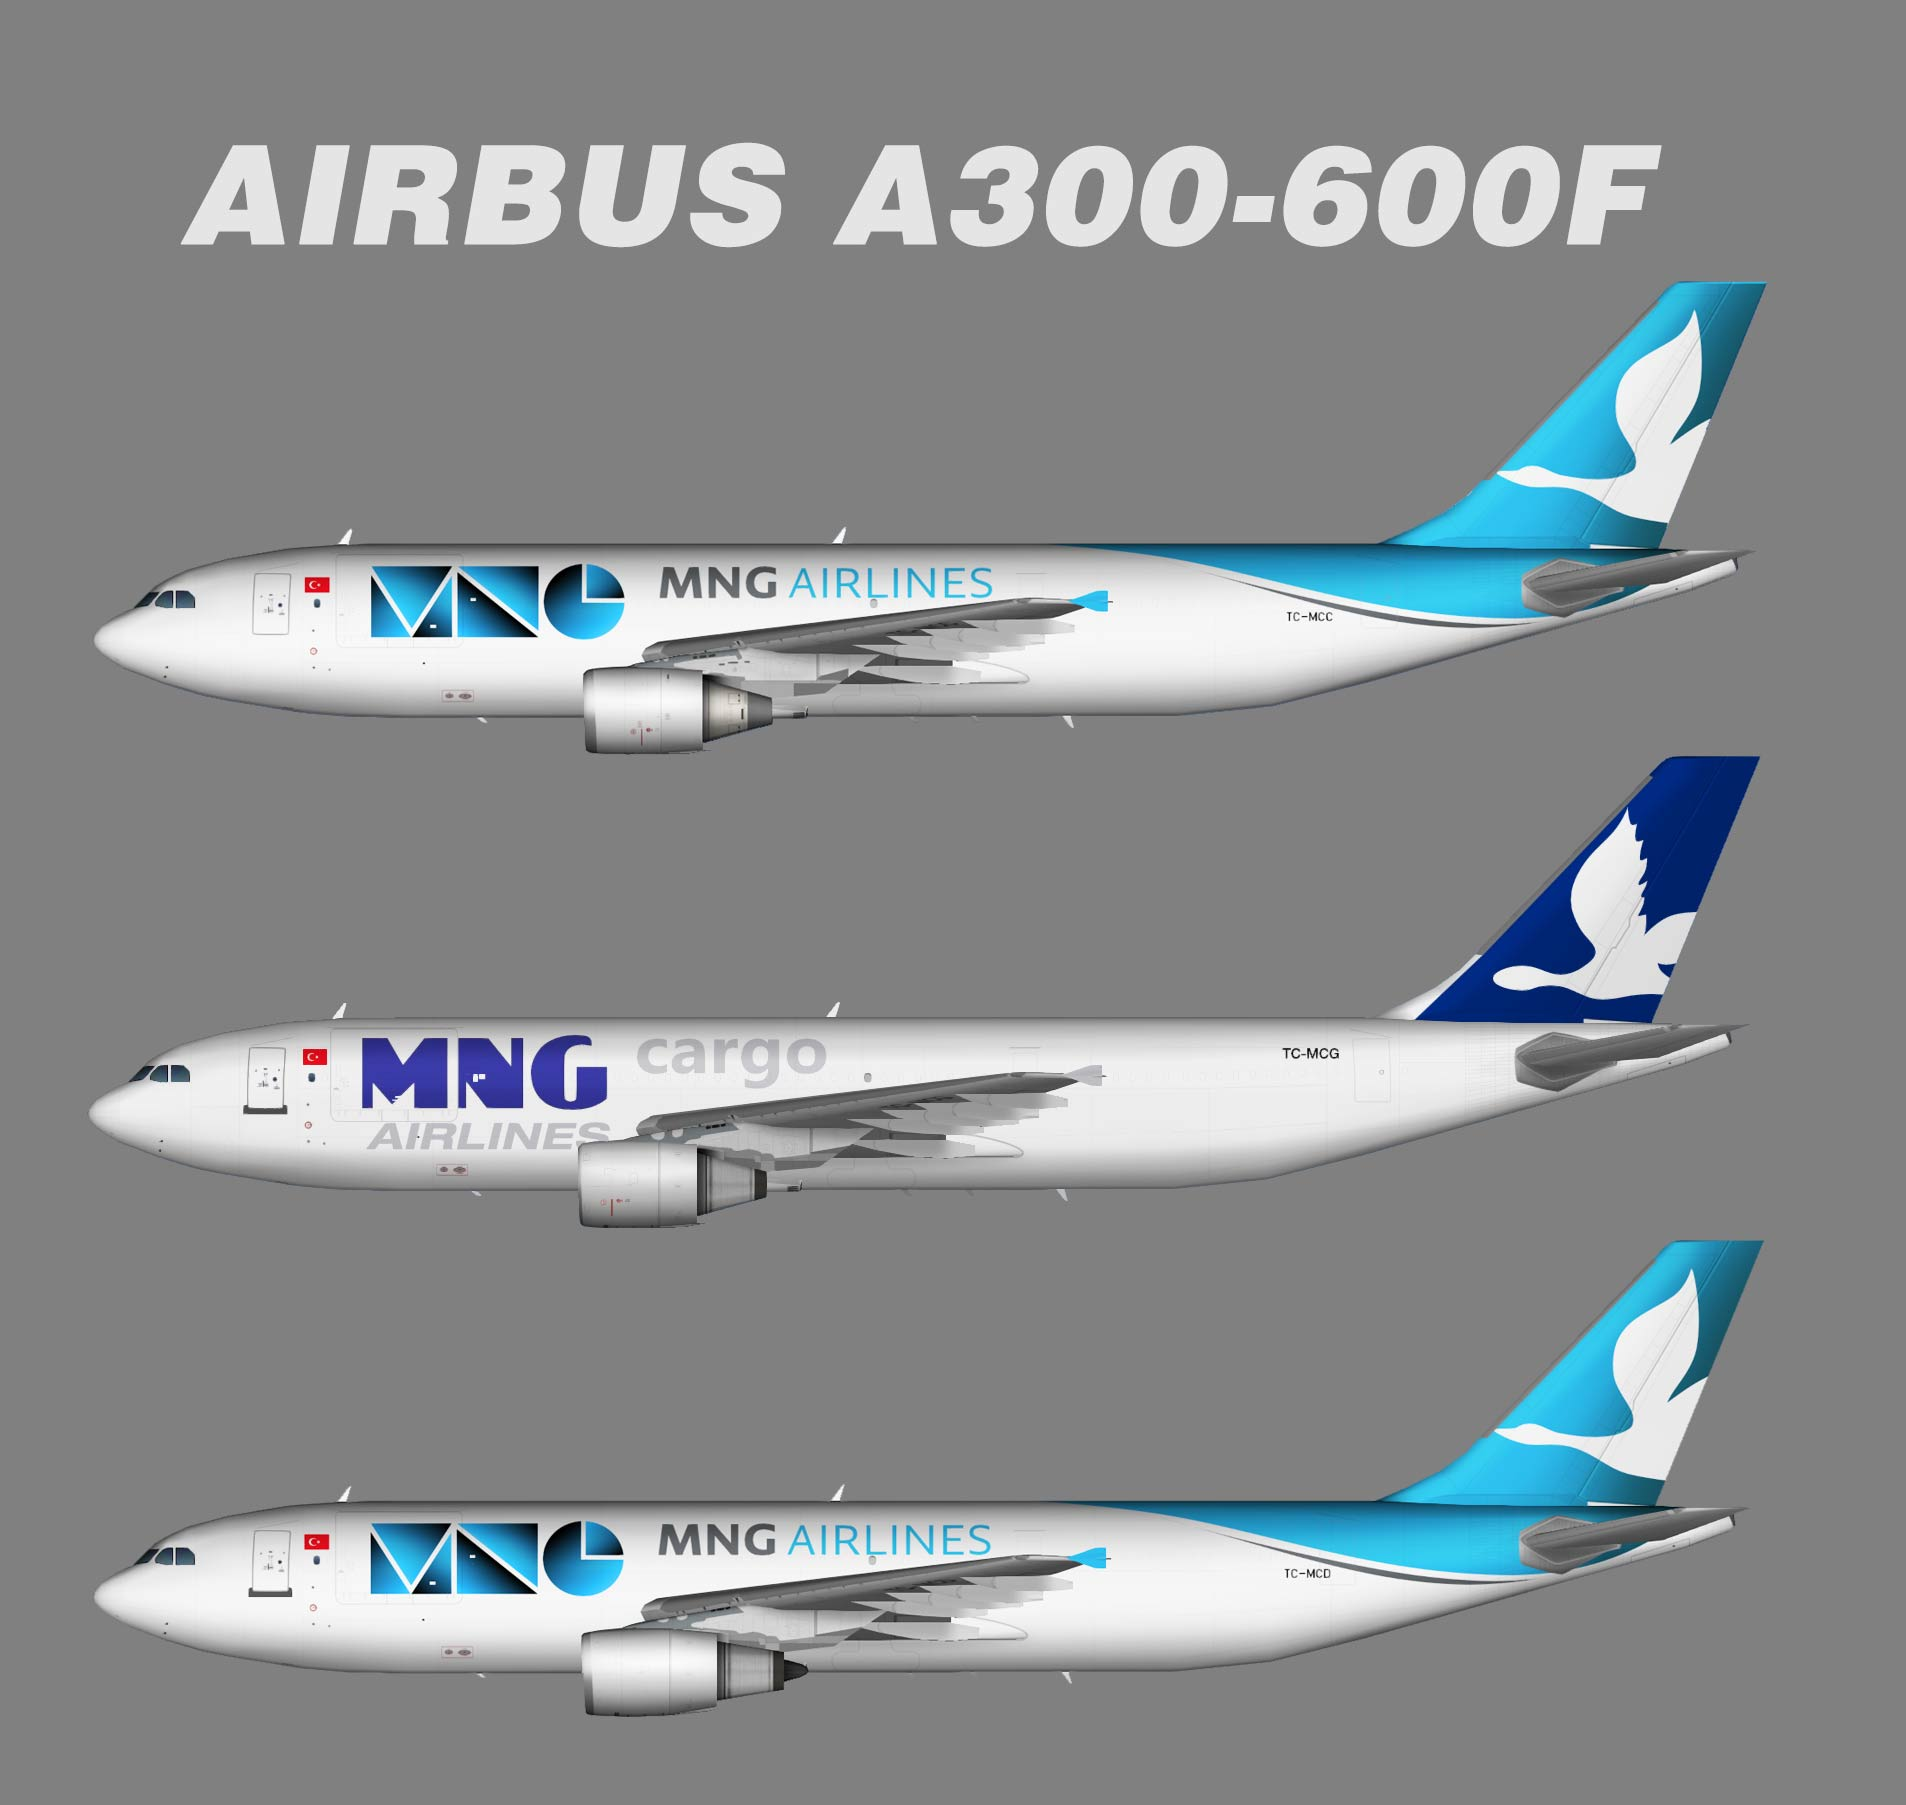 MNG Airlines Airbus A300-600F